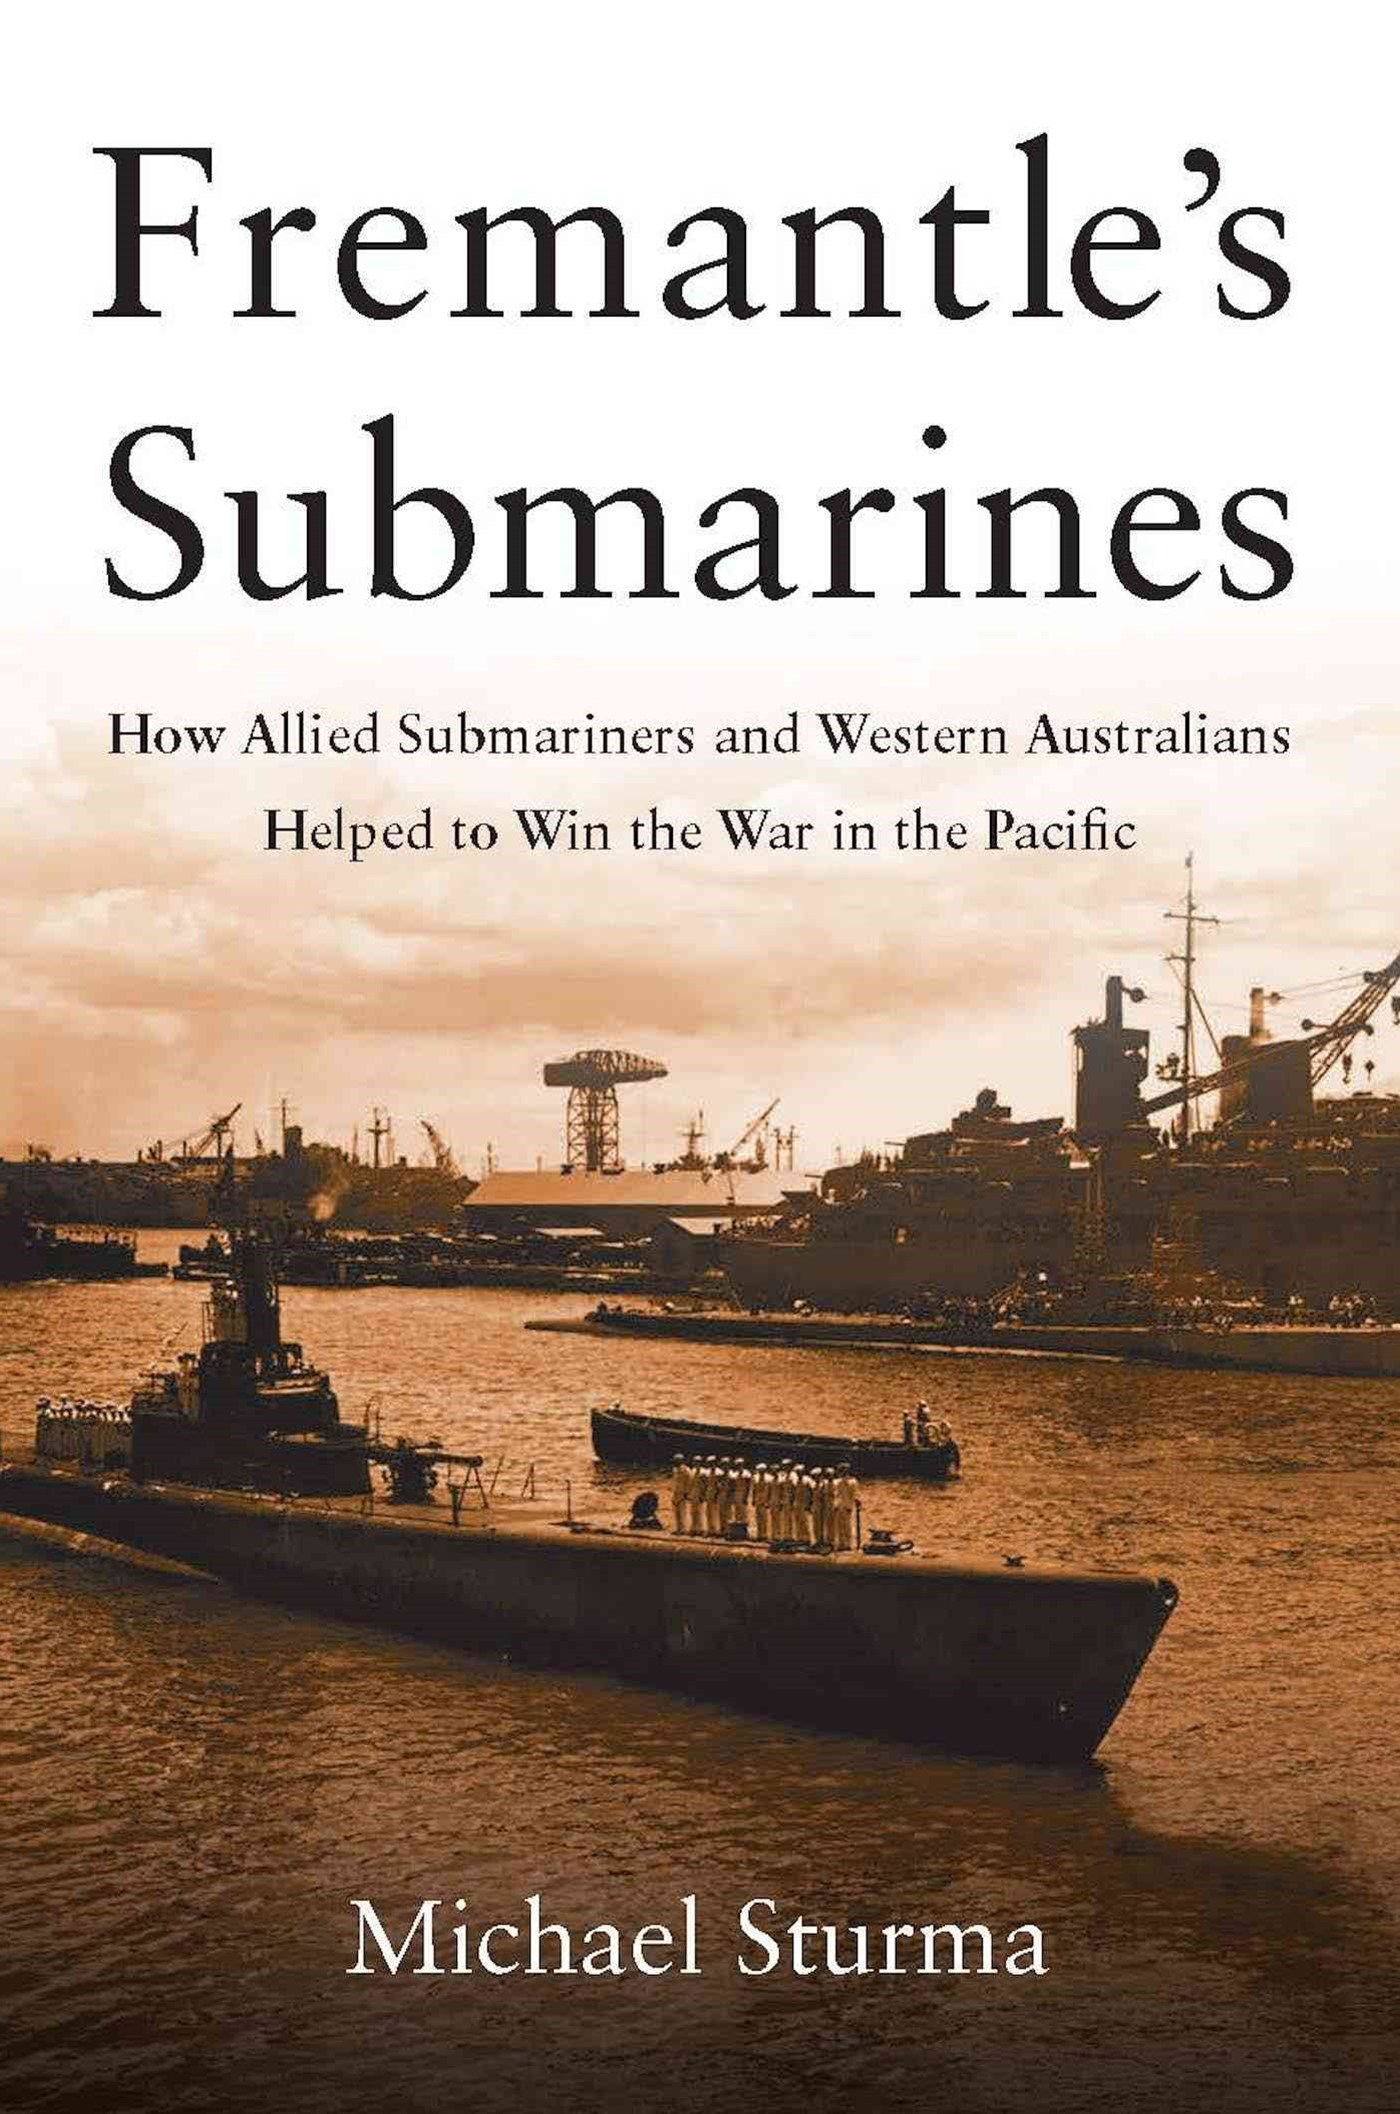 Fremantle's Submarines